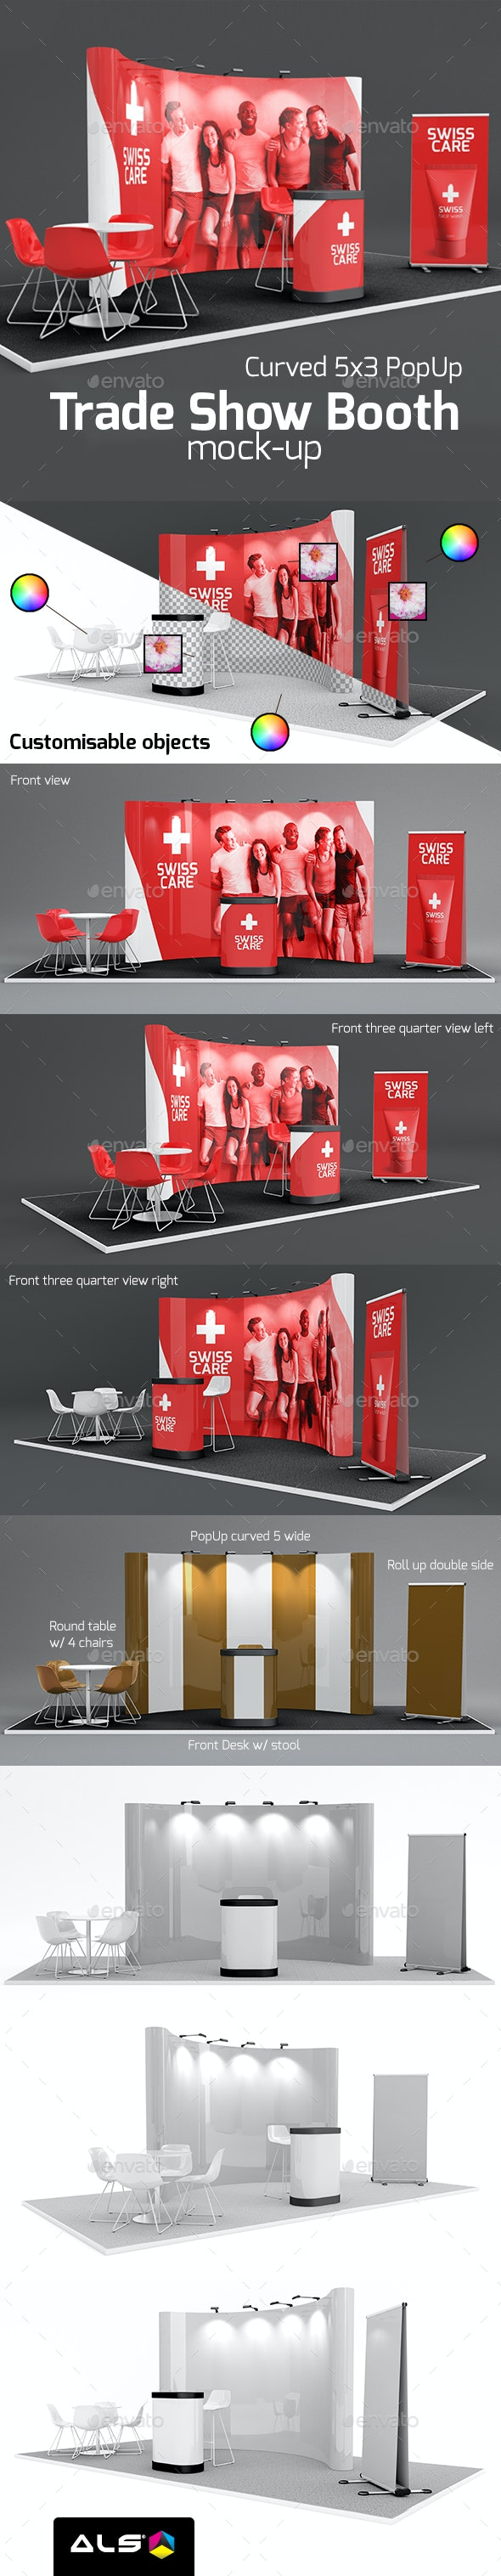 01 Trade Show Booth Mock-up 5x3 - Miscellaneous Print